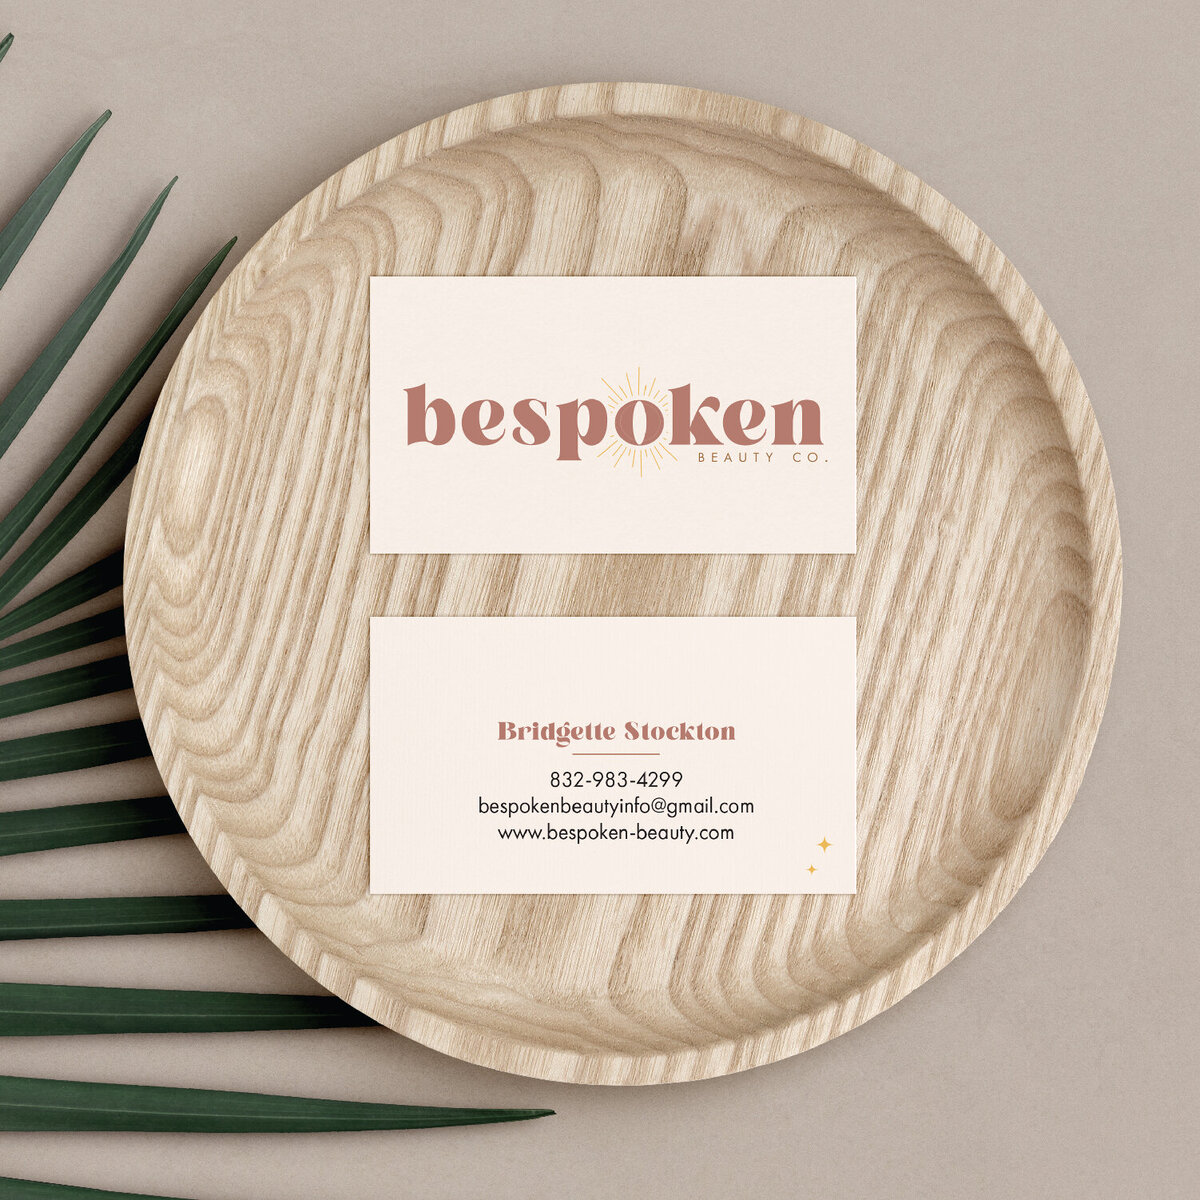 Instagram Feed-Bespoken Beauty-24